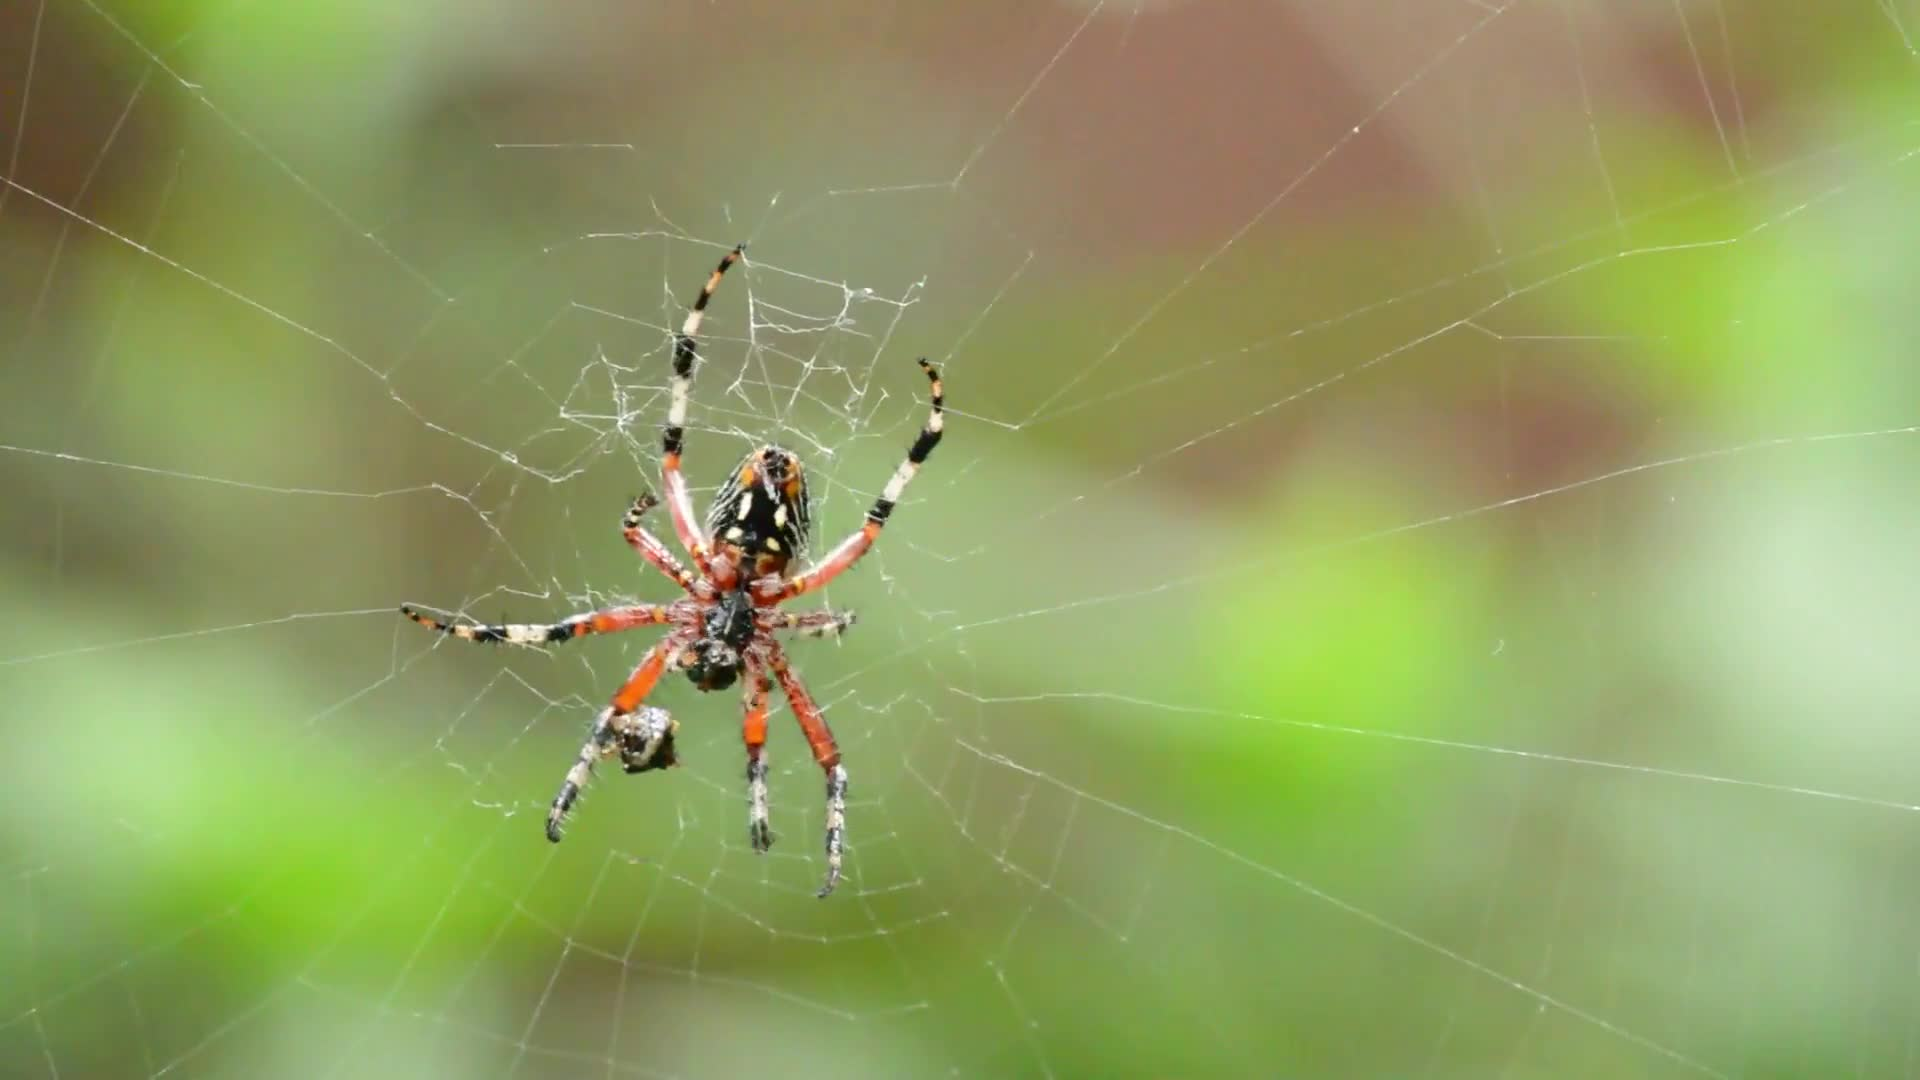 Spider arachnid food eating network